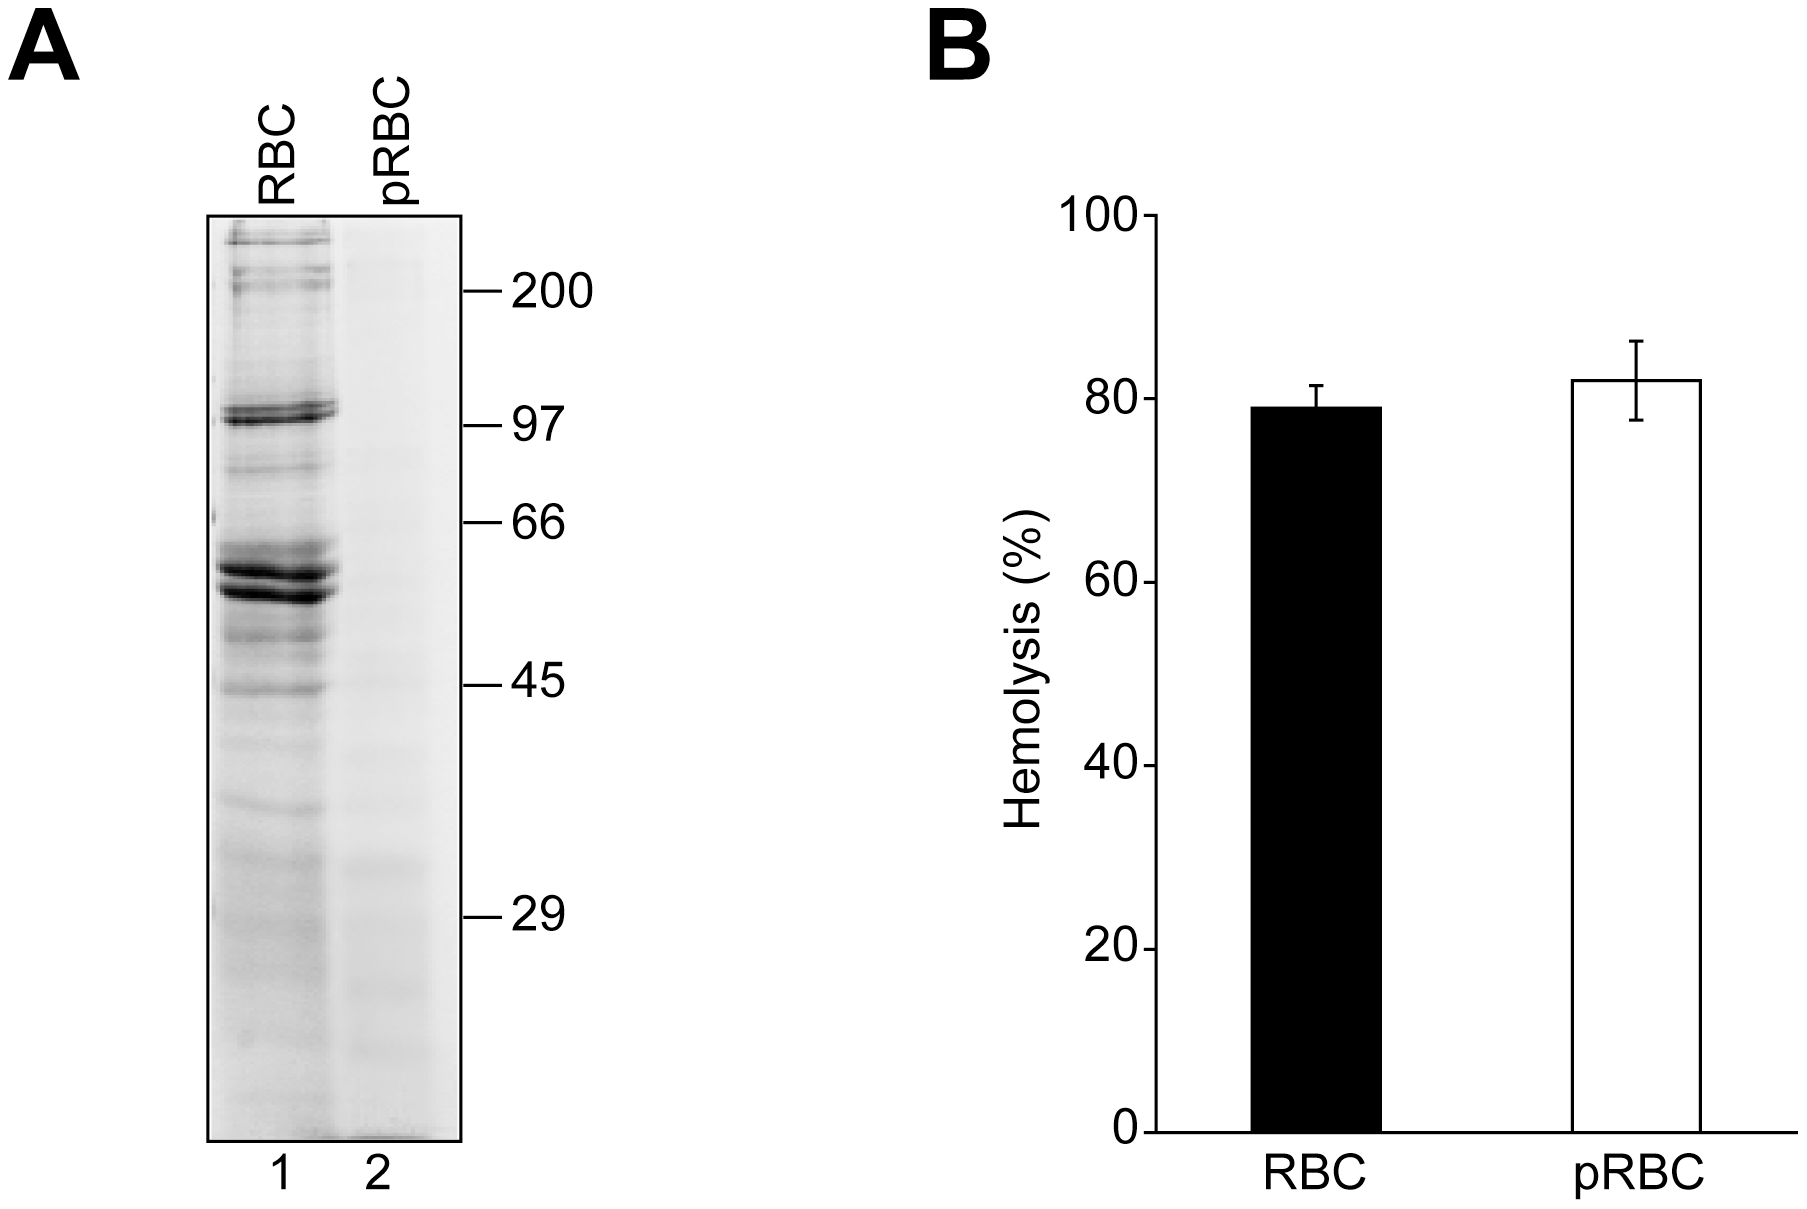 RBC surface proteins are not required for VP4-mediated hemolysis.